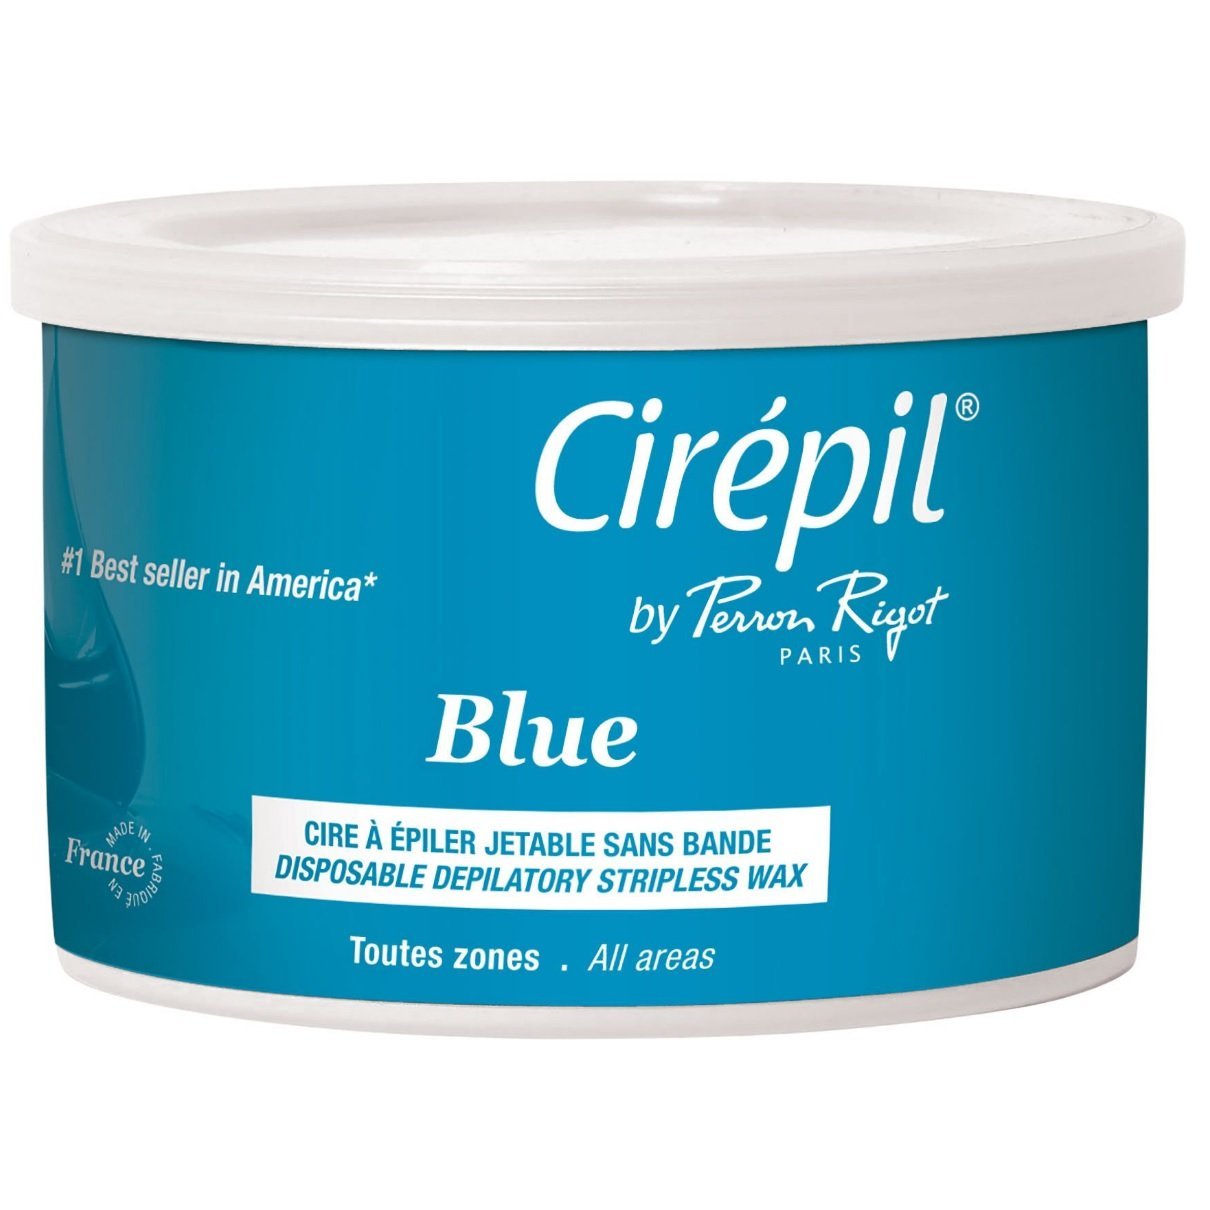 Perron Rigot Cirepil Blue Wax, 14.11 Ounce Tin